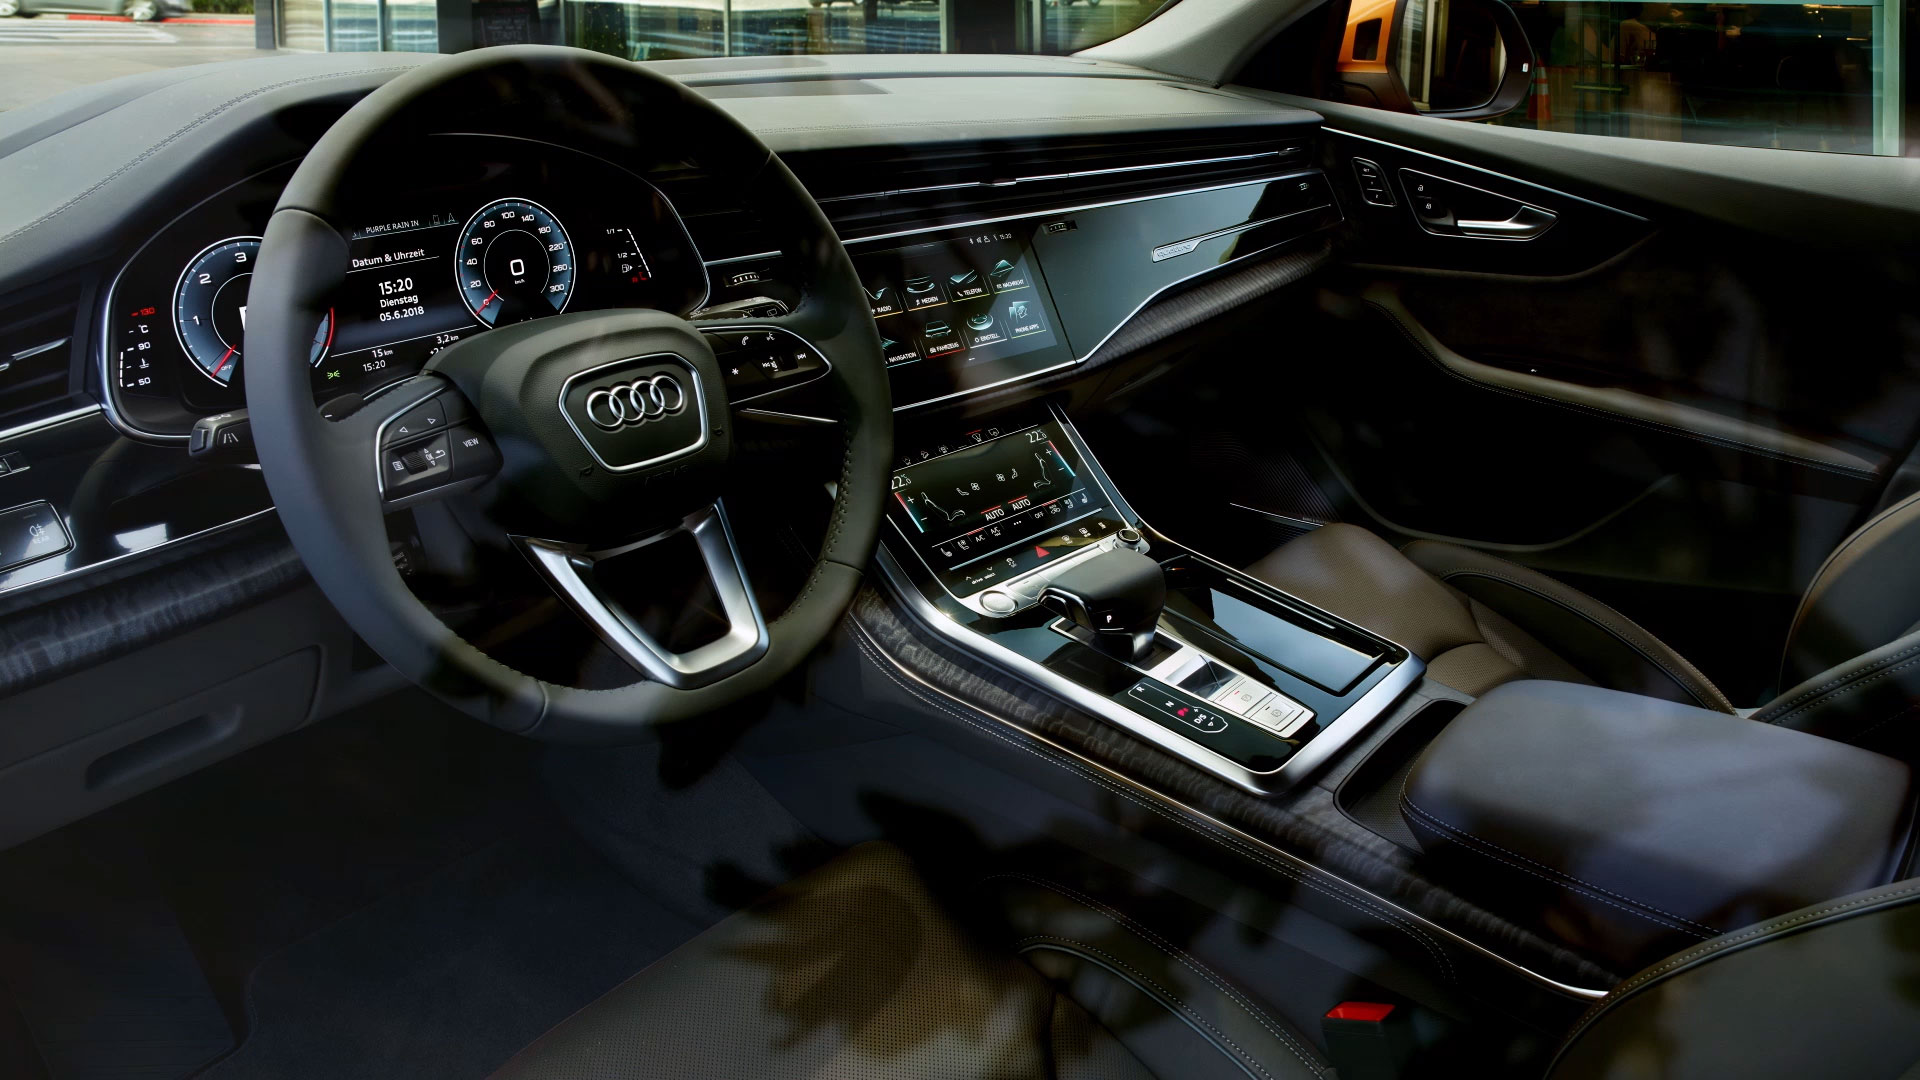 Interior of the 2019 Audi Q8